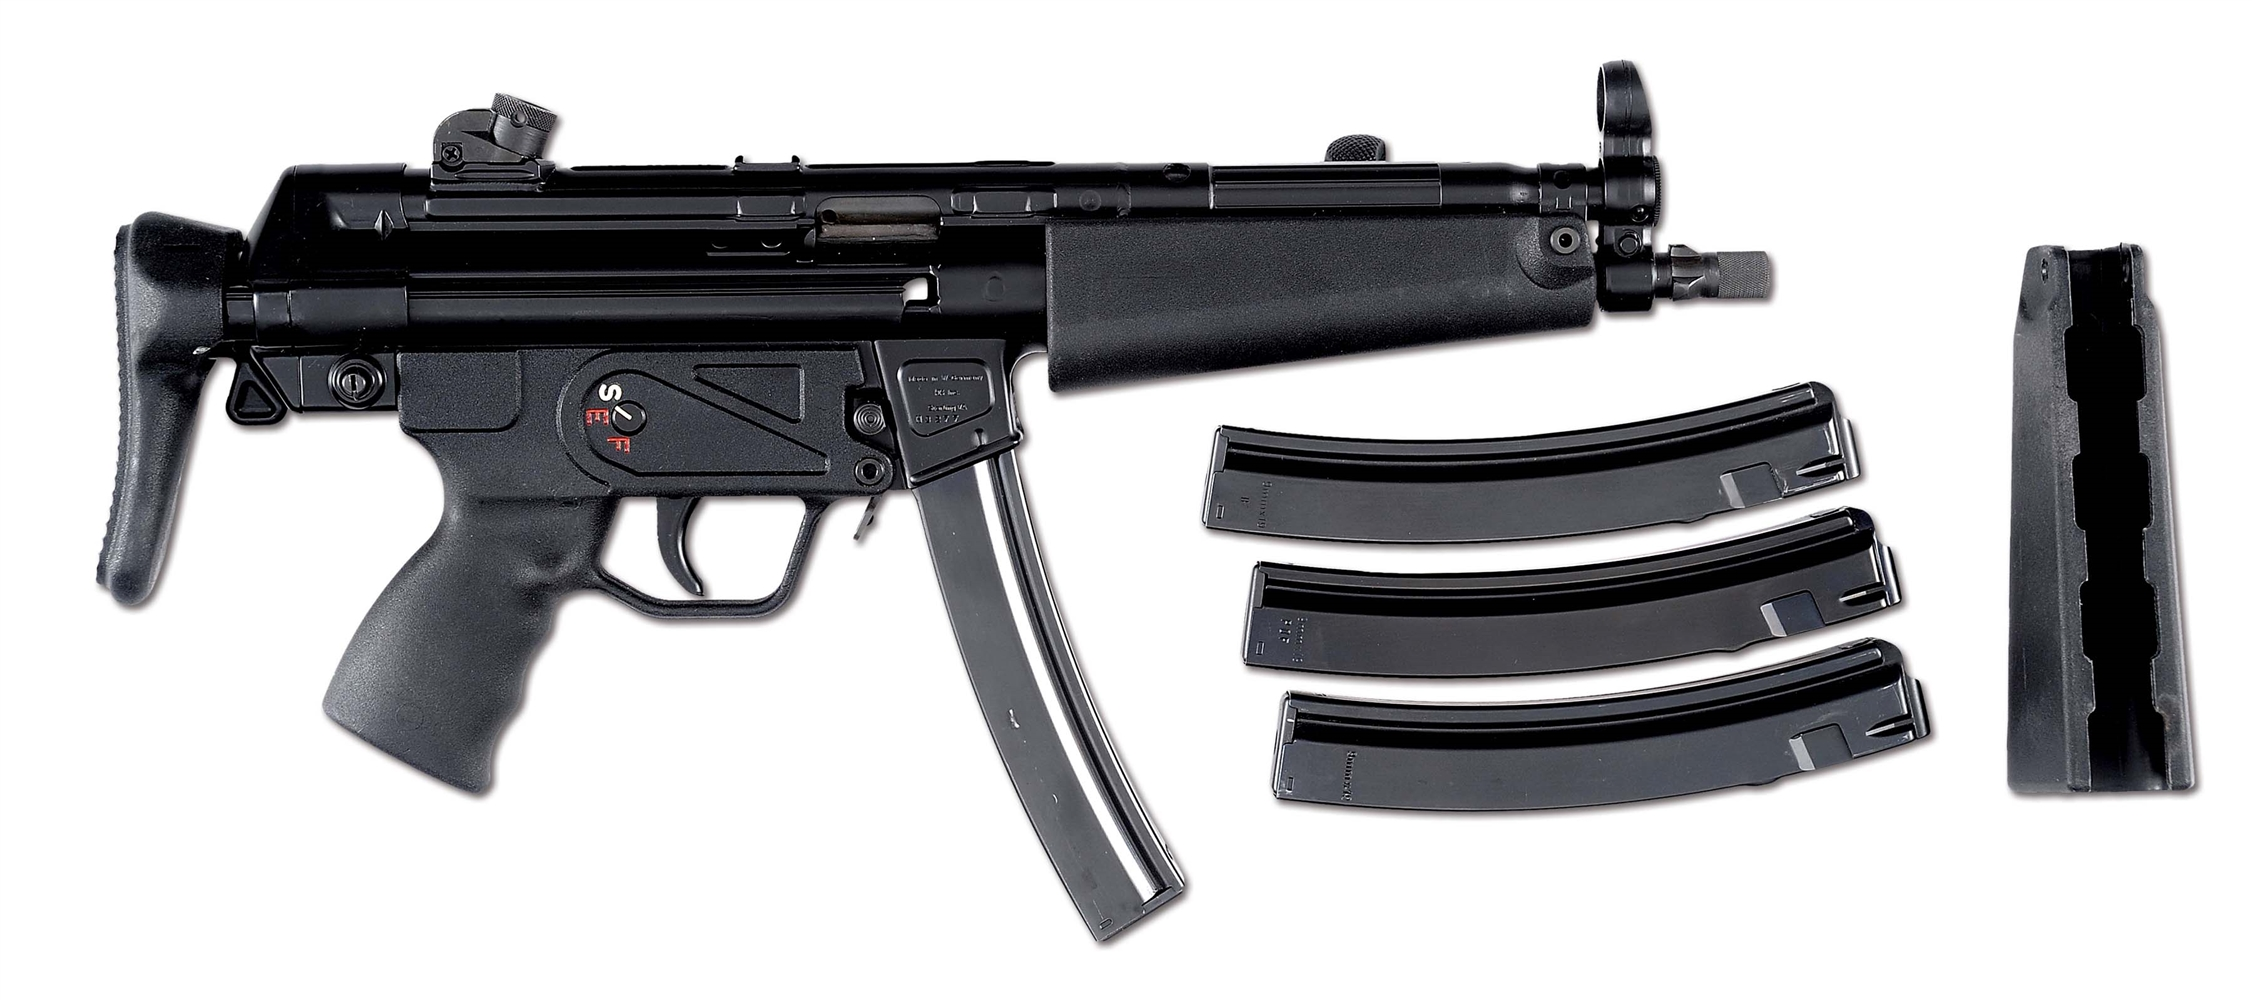 (N) EVER POPULAR FLEMING REGISTERED H&K 3 POSITION AUTO-SEAR PACK IN MULTIPLE CALIBERS ON H&K MP5 HOST GUN (FULLY TRANSFERRABLE).